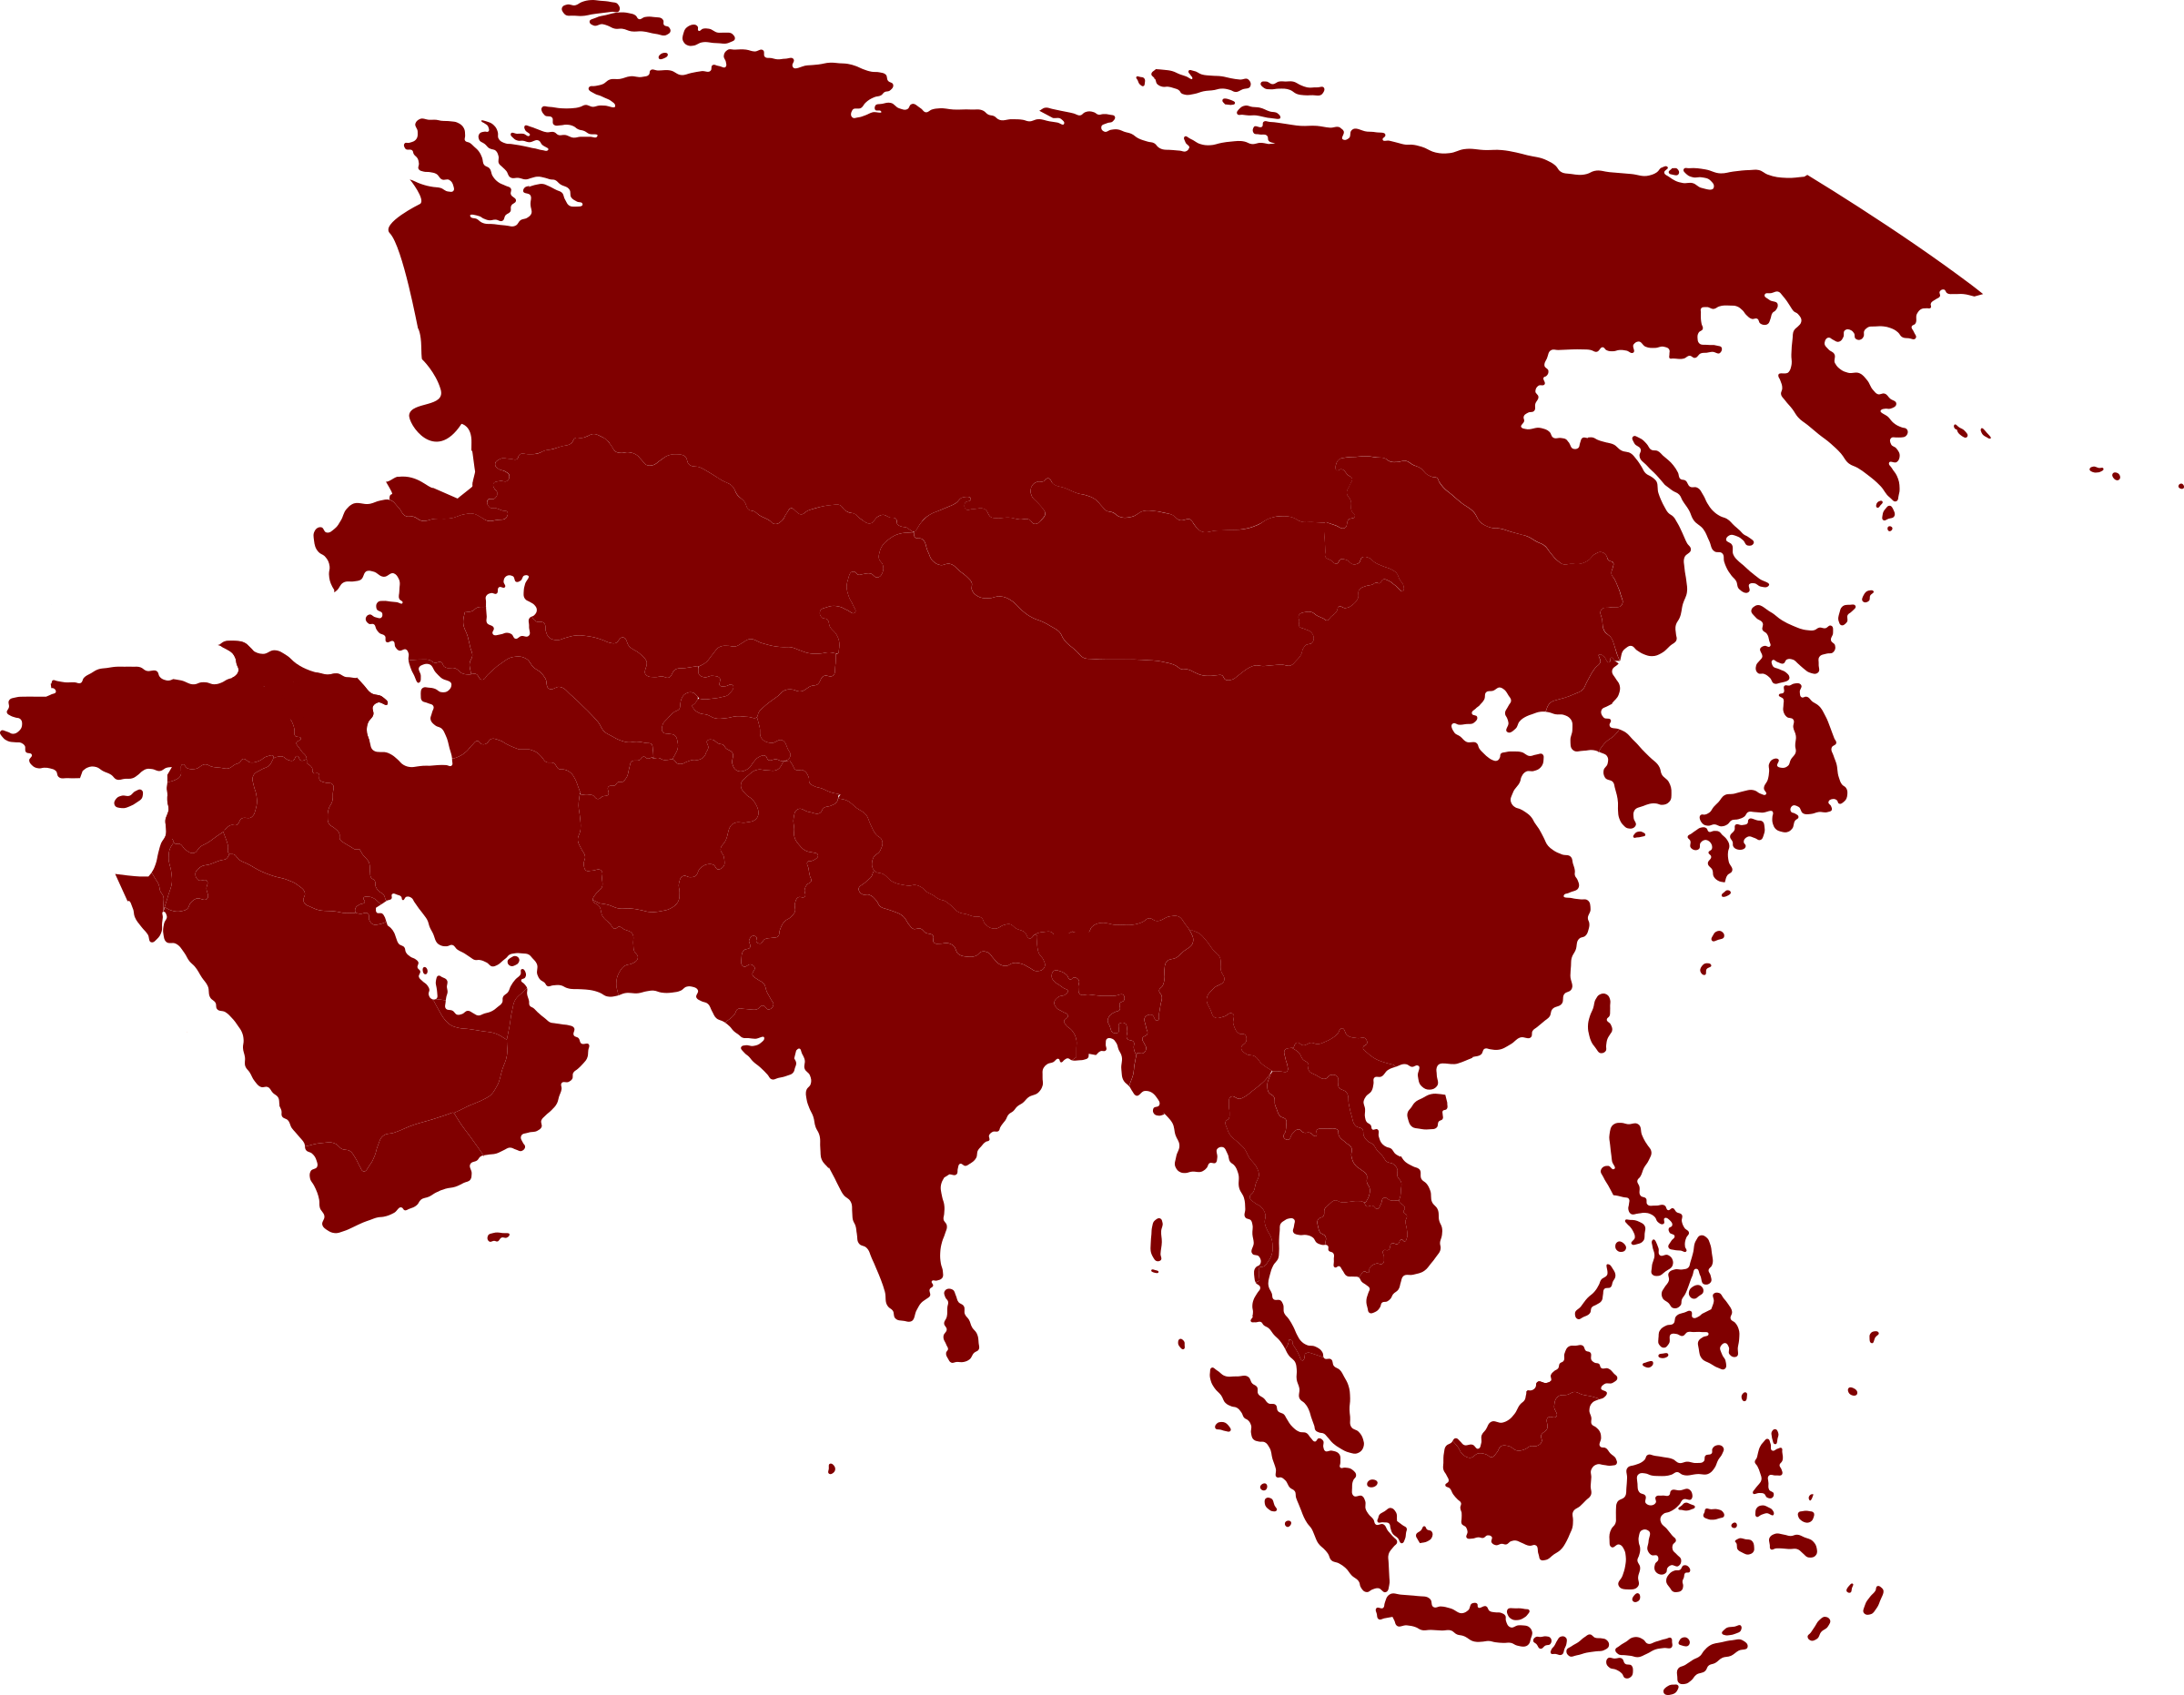 Asian continent by Iyo